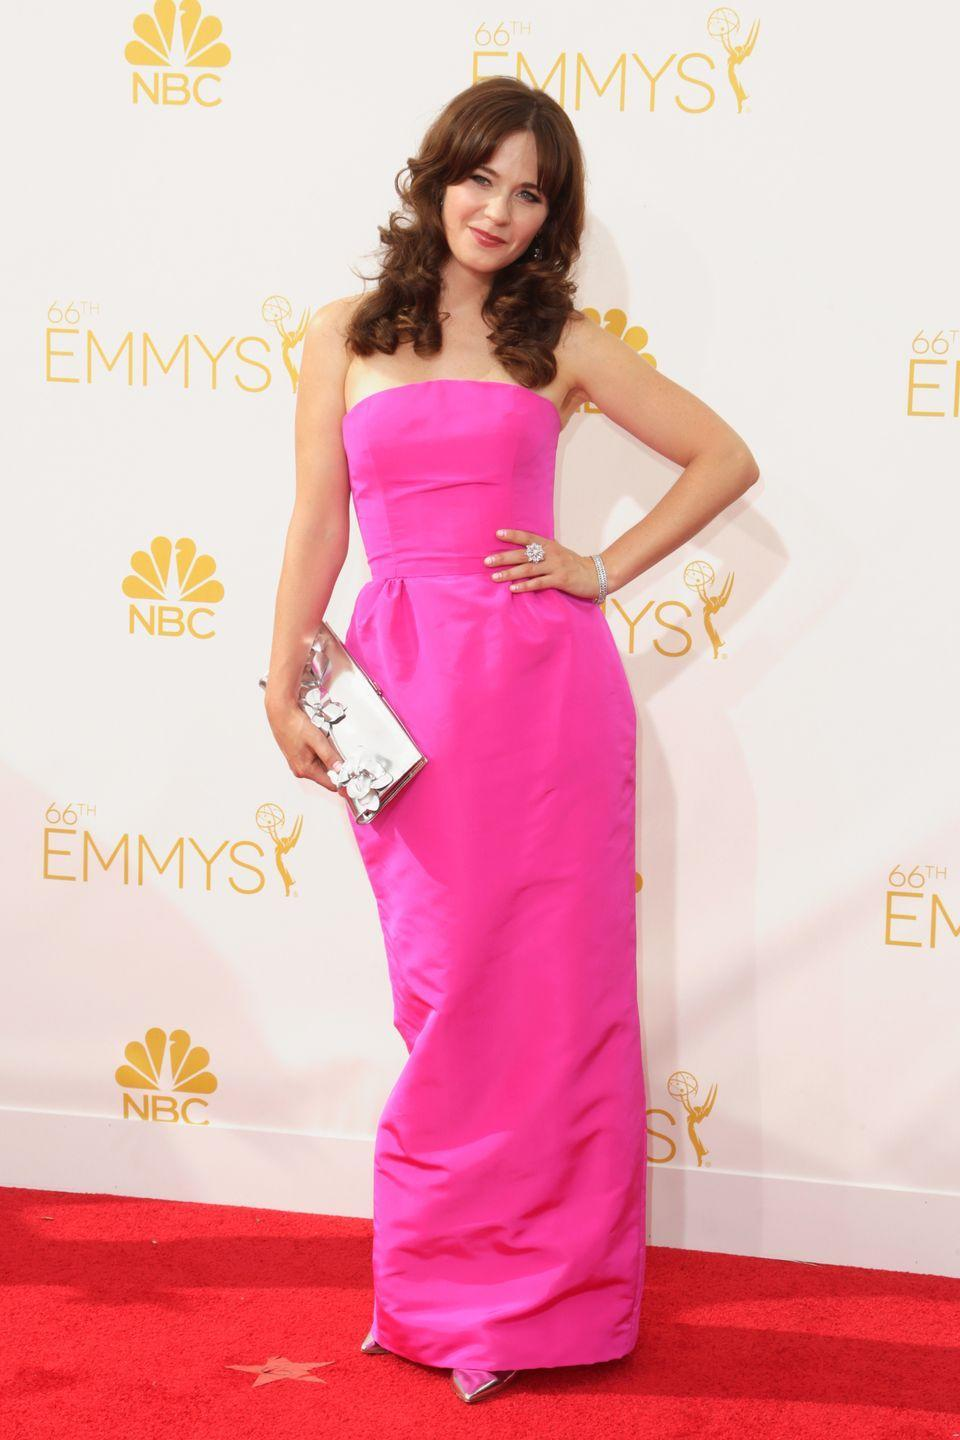 <p>Zooey Deschanel looked like a present-day Princess Aurora in a shocking pink Oscar de la Renta gown at the 2014 Emmy Awards.</p>